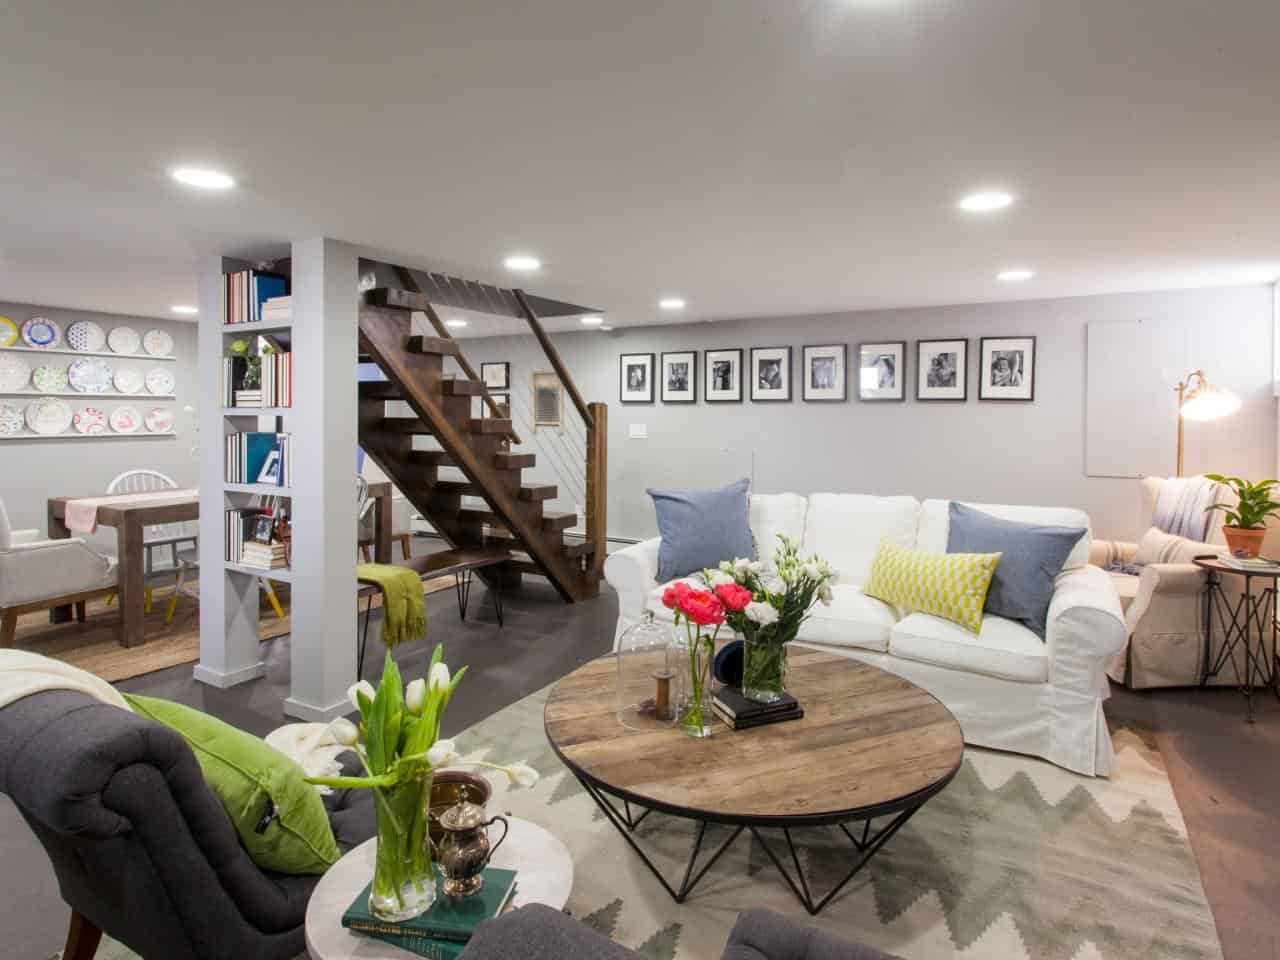 15 Mind Blowing Basement Remodeling Projects to Consider   Homesthetics   Inspiring ideas for ...